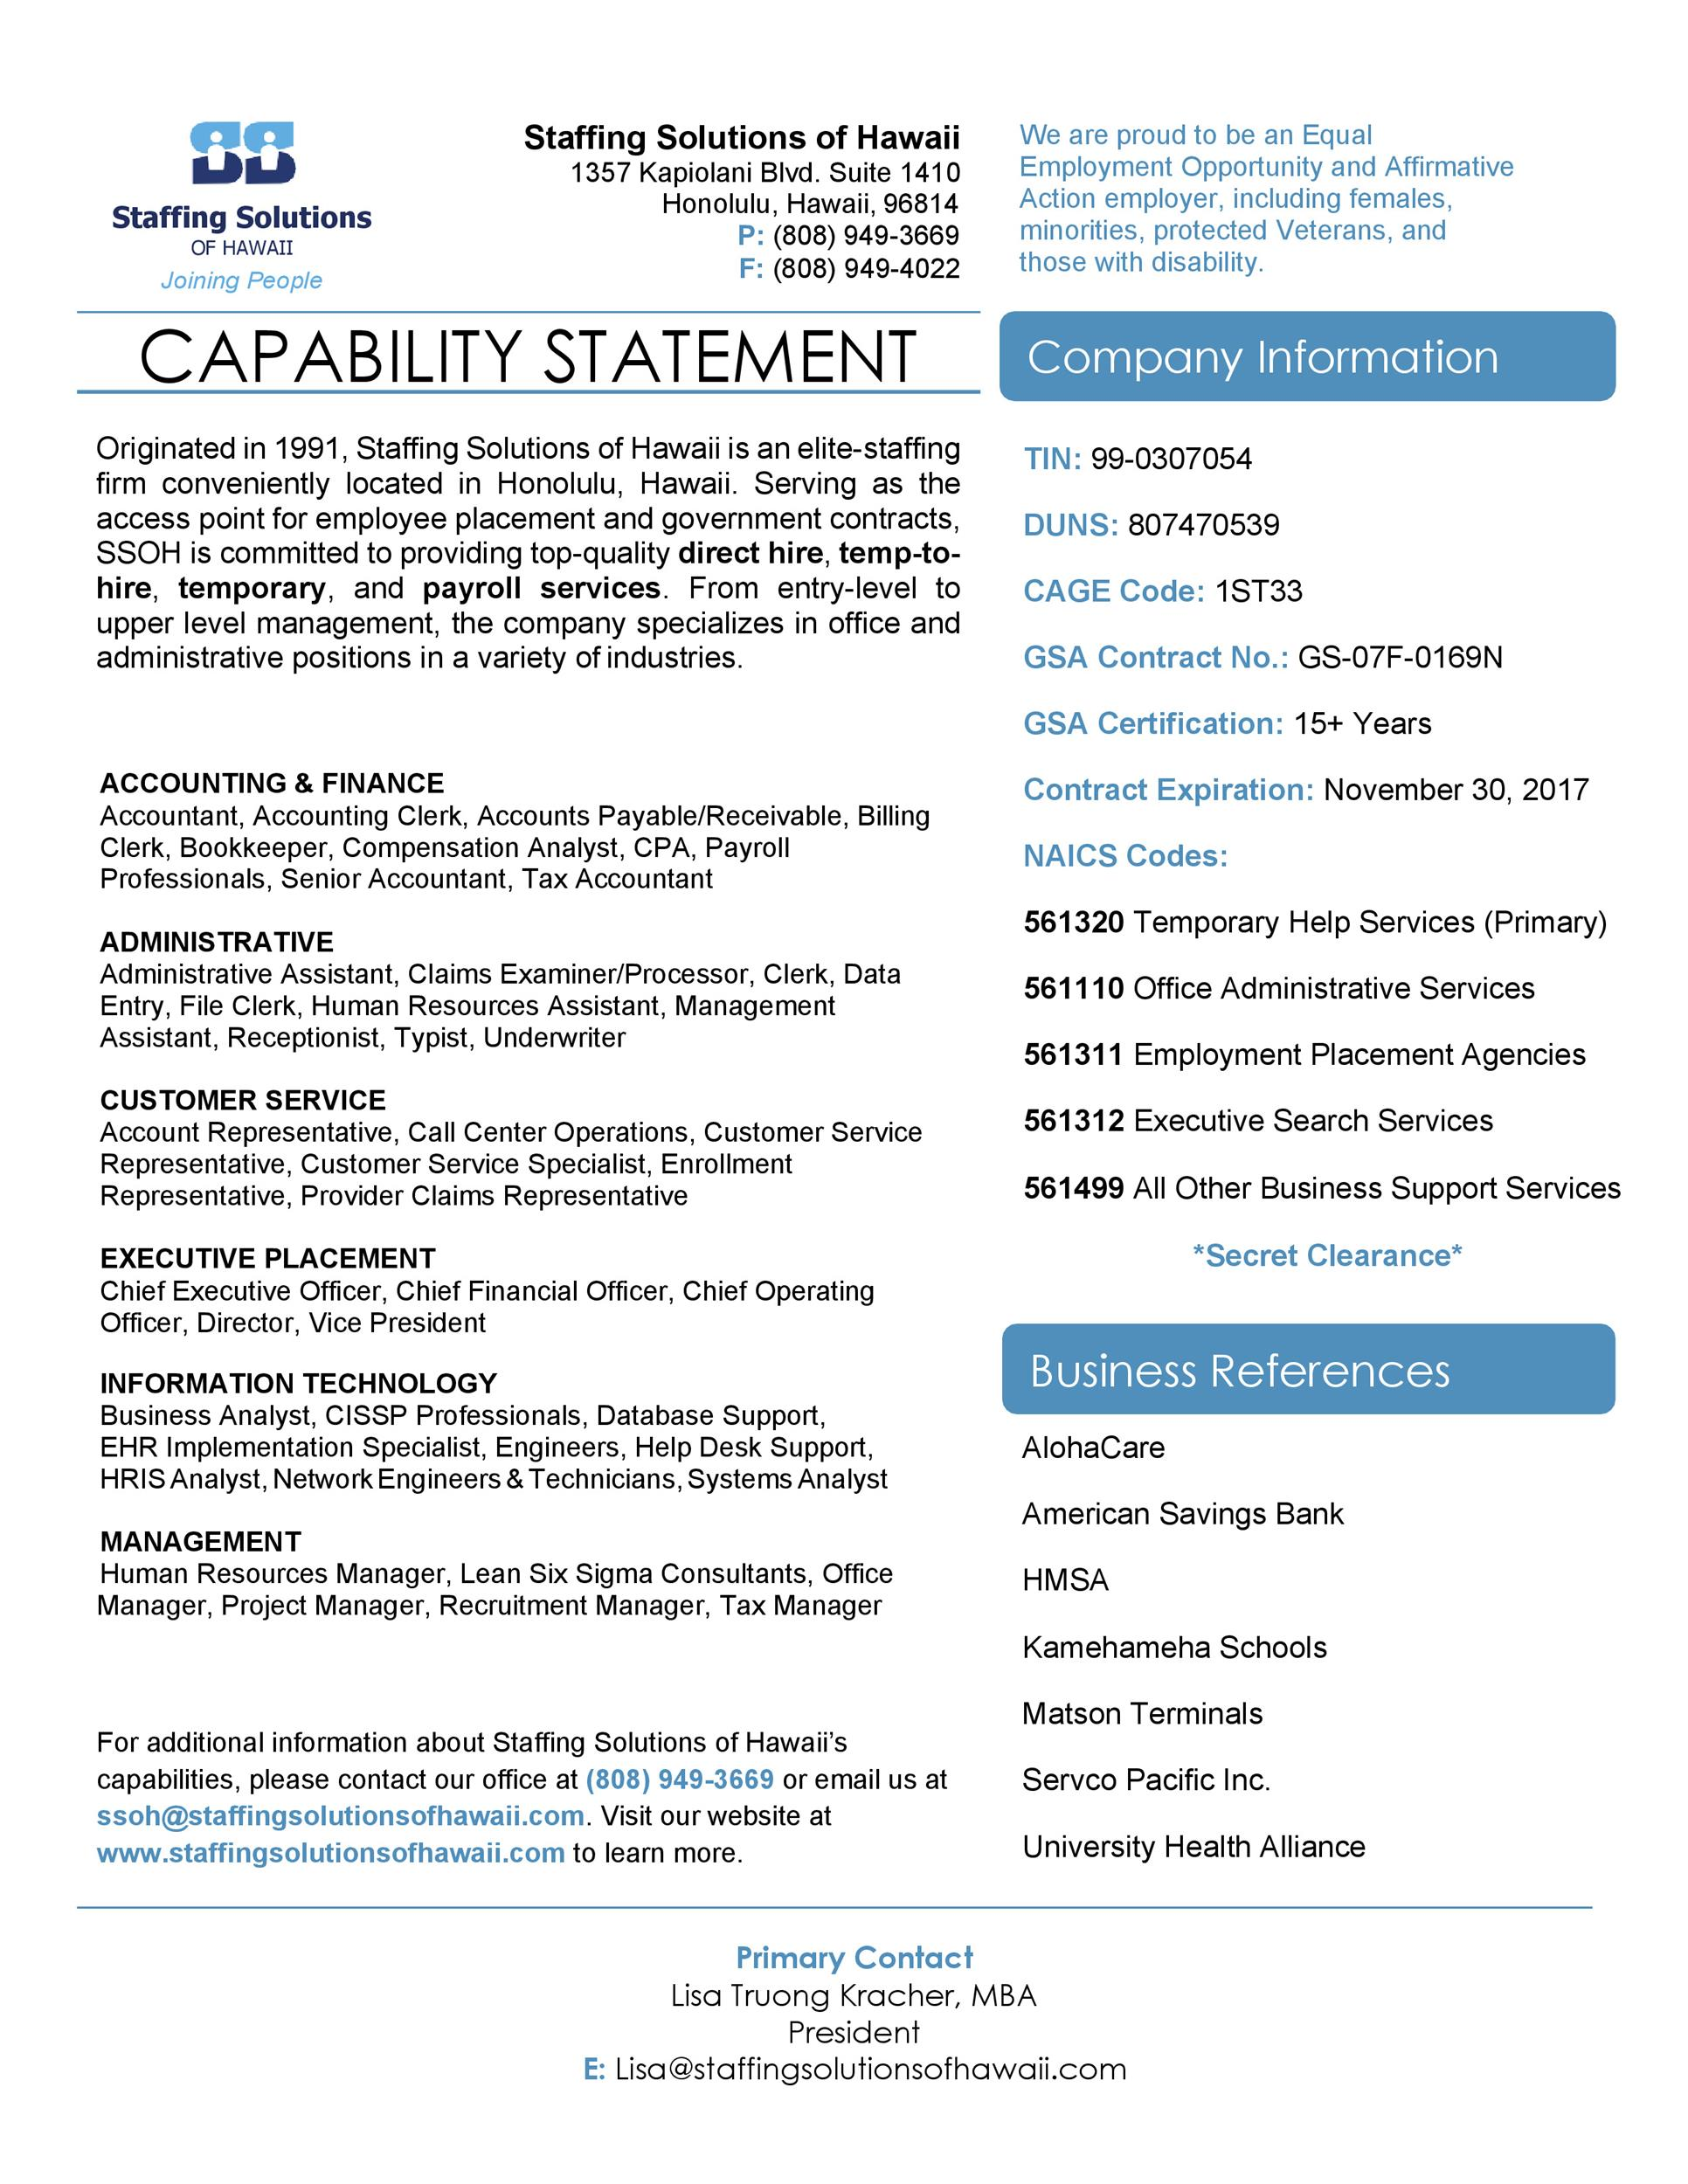 Free capability statement 15